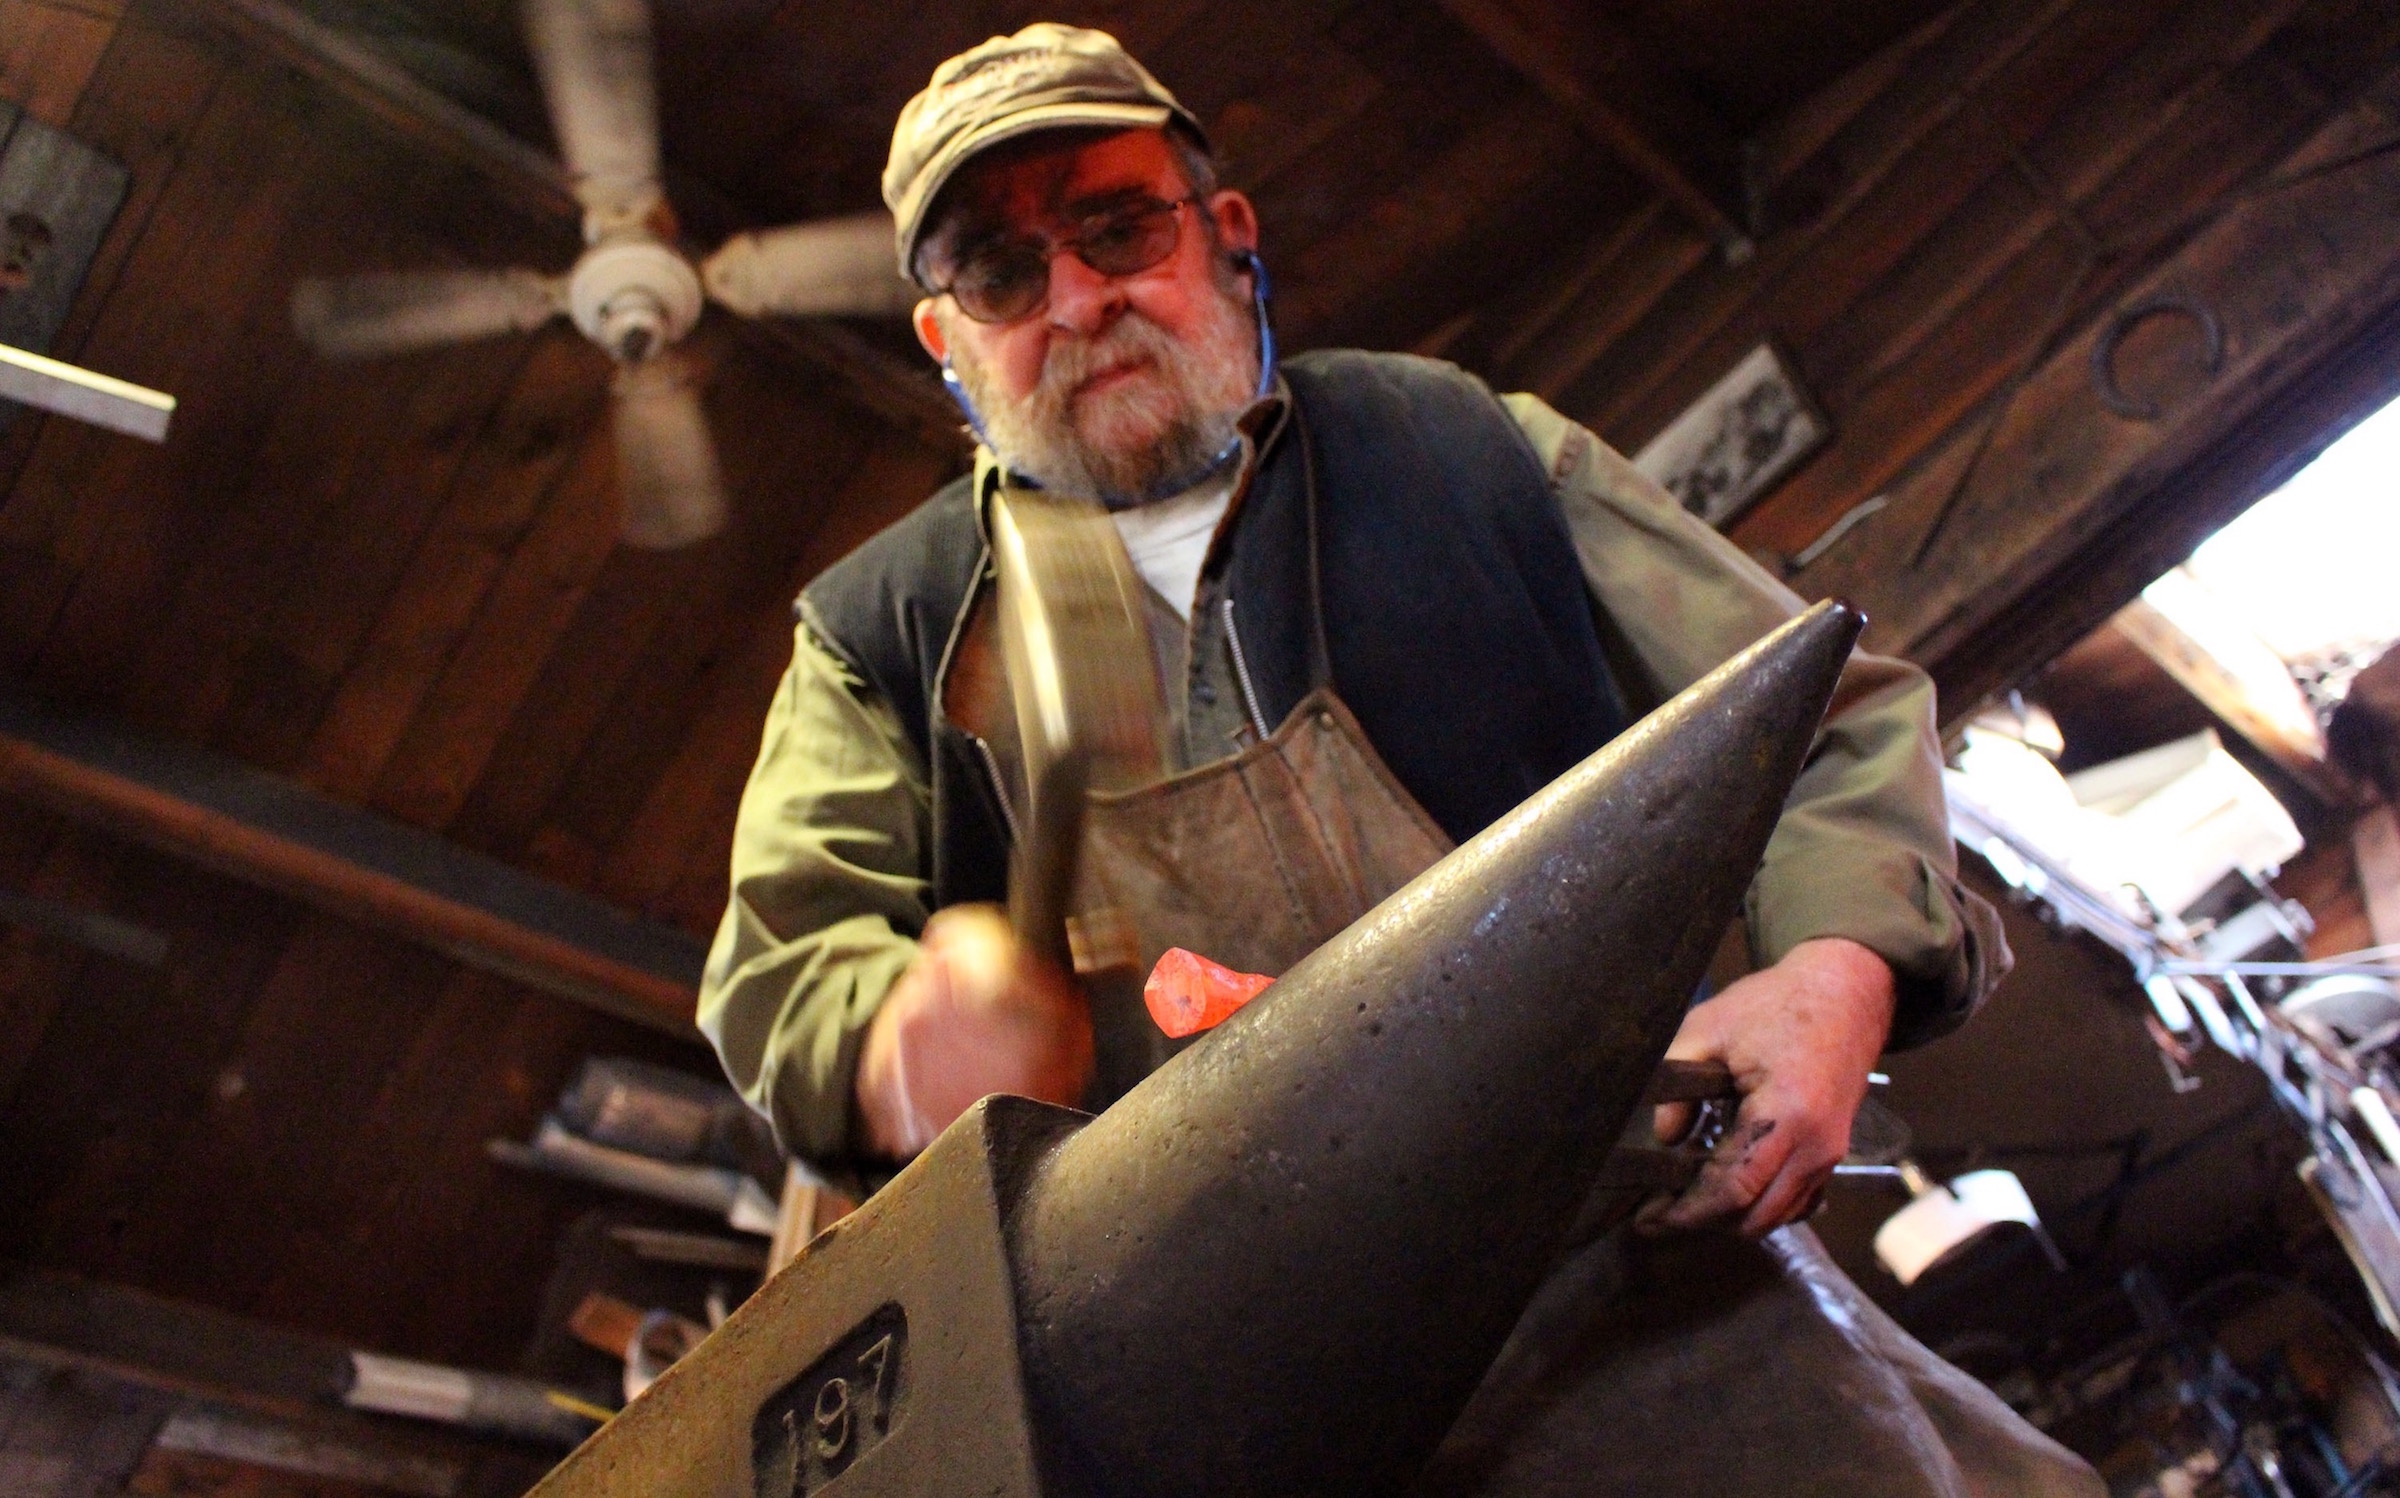 John Little hammers on his anvil in his East Dover forge. He has been blacksmithing for 48 years.